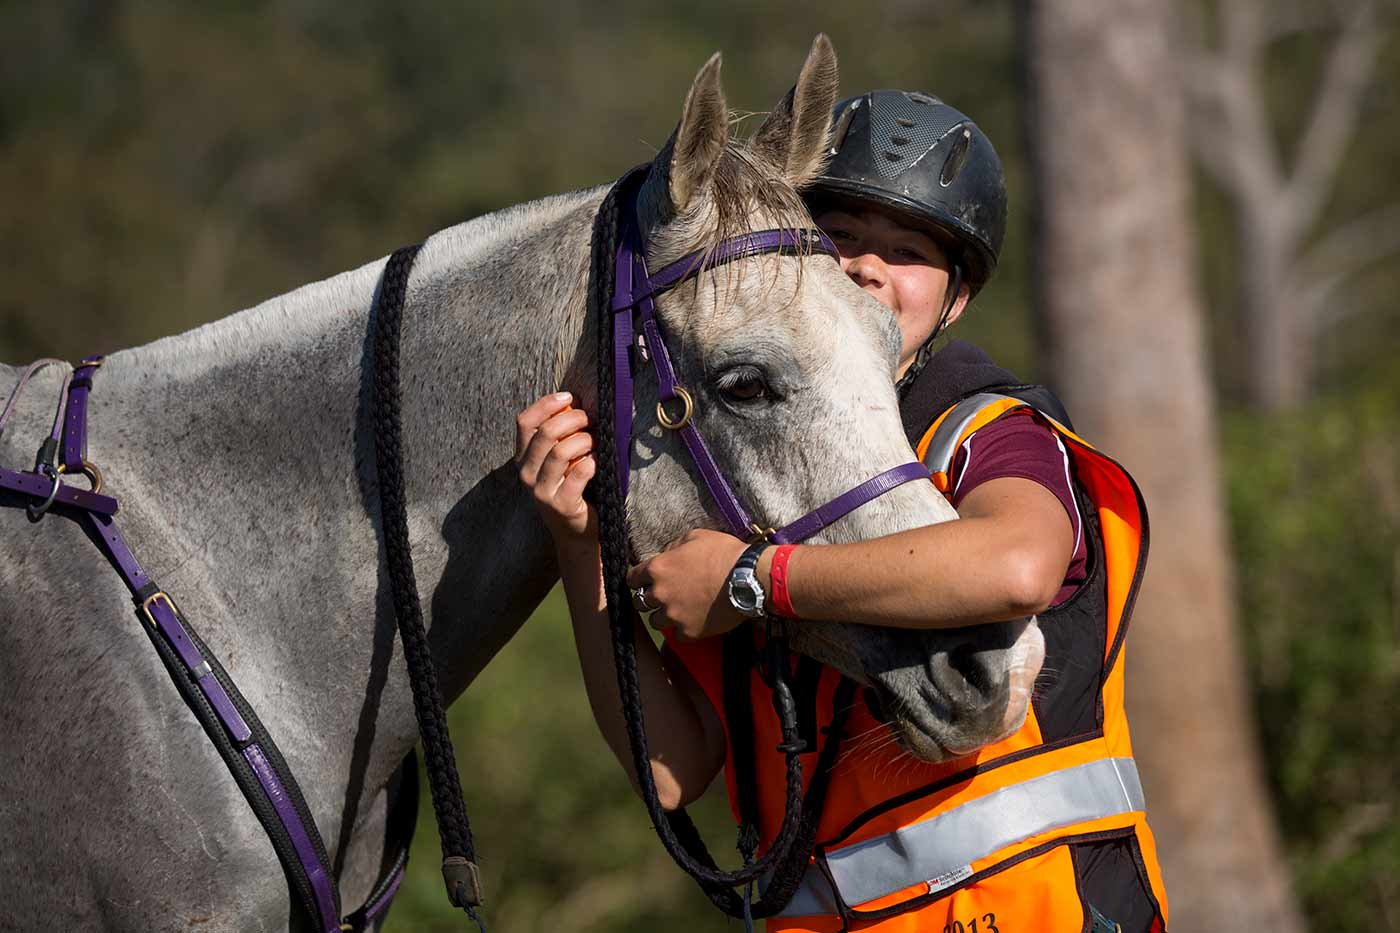 A woman wearing a riding helmet and bright orange safety vest cradles a horses head in her arms.  - click to view larger image